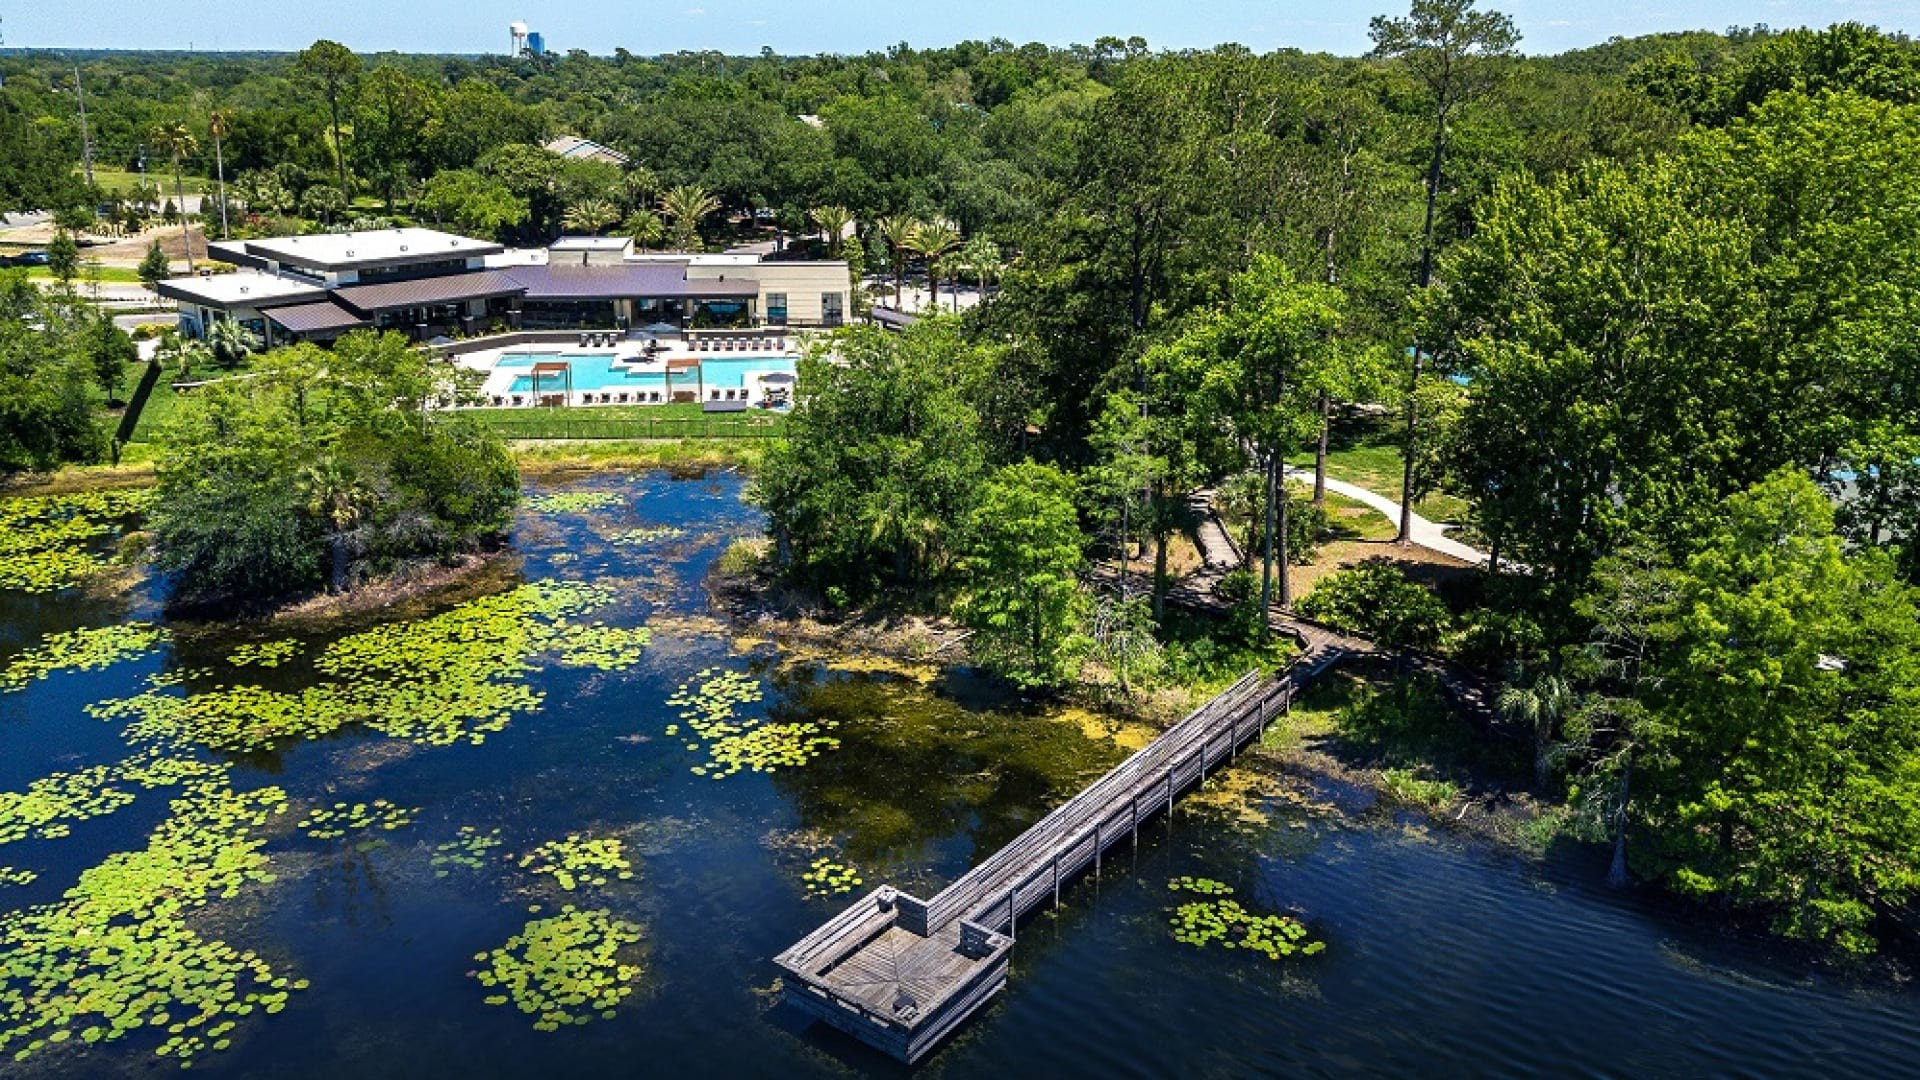 Lakeside apartment complexes in Apopka, FL